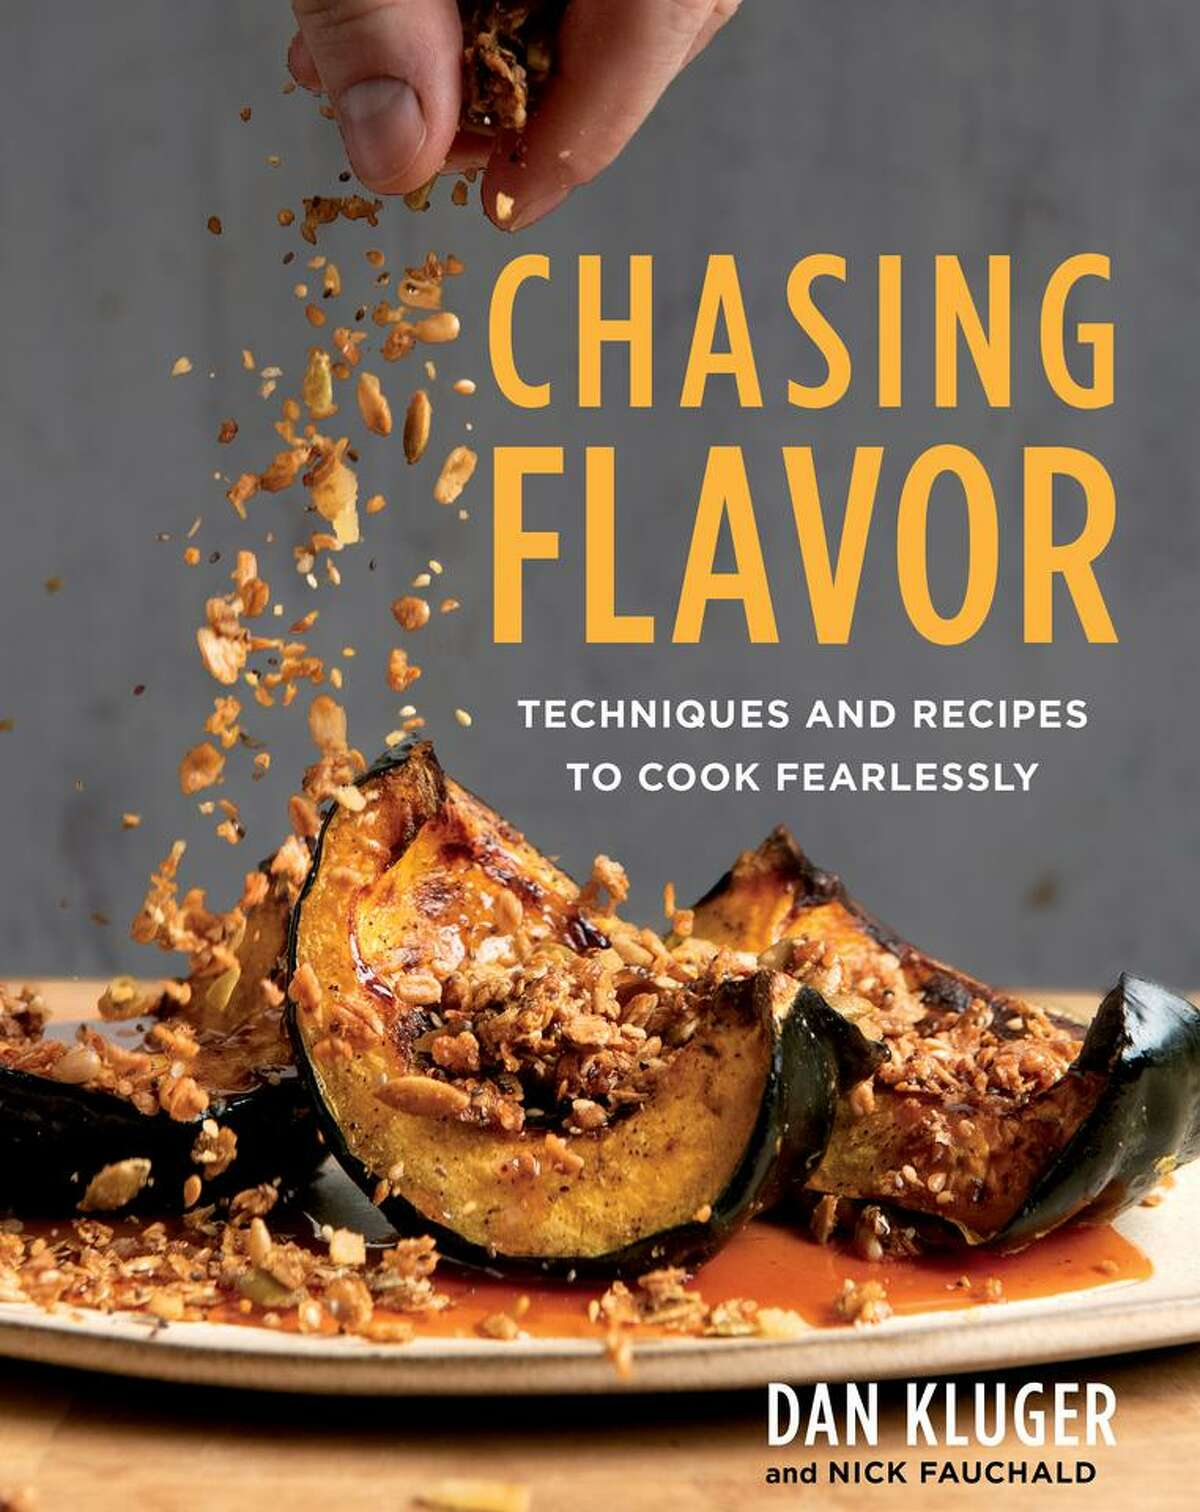 """Cover: """"Chasing Flavor: Techniques and Recipes to Cook Fearlessly"""" by Dan Kluger with Nick Fauchald."""